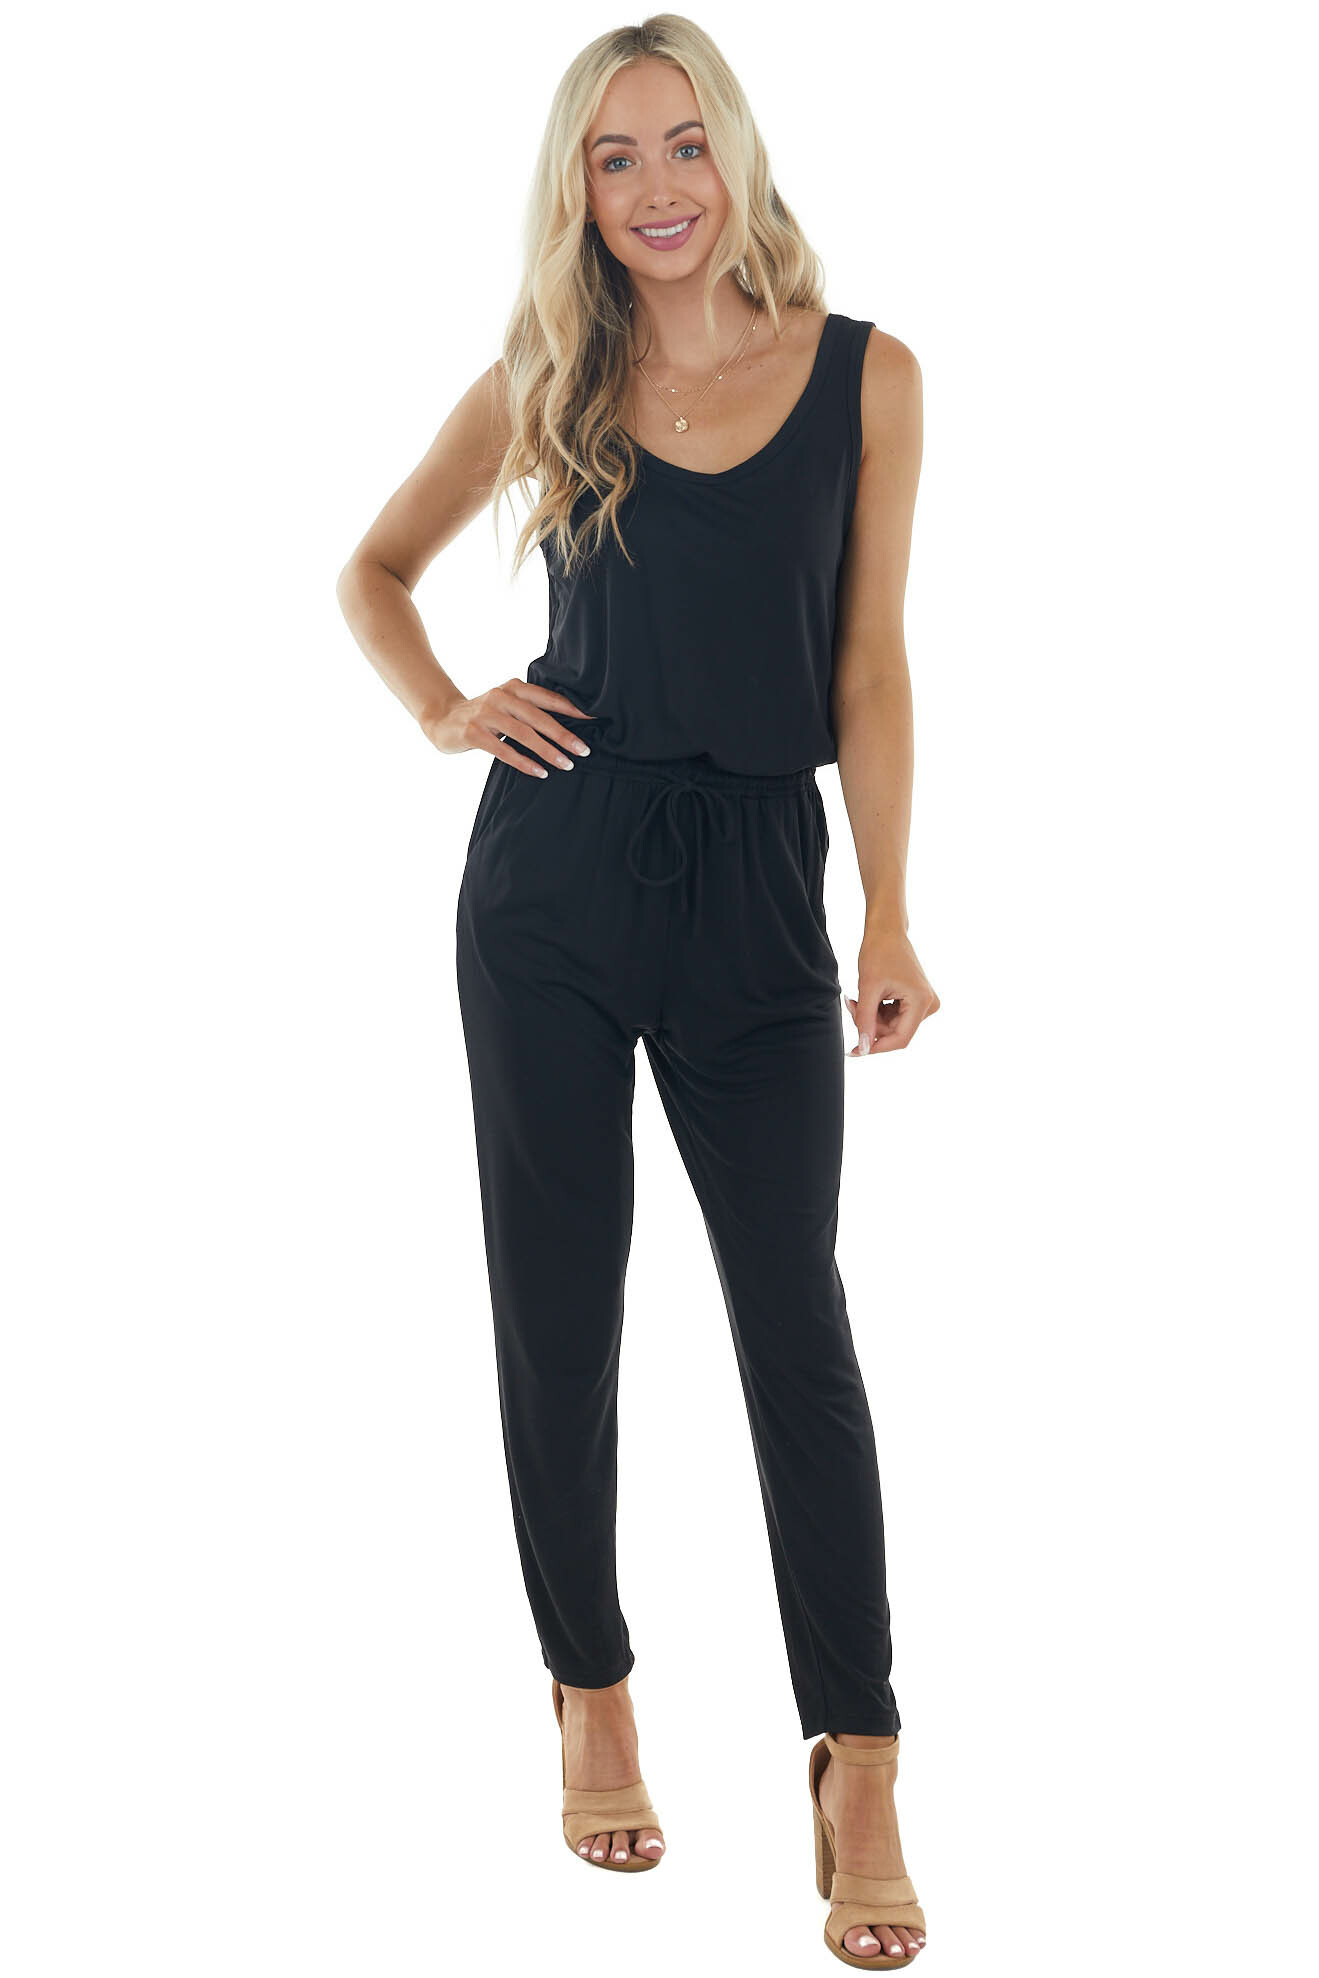 Black Sleeveless Stretchy Knit Jumpsuit with Waist Tie